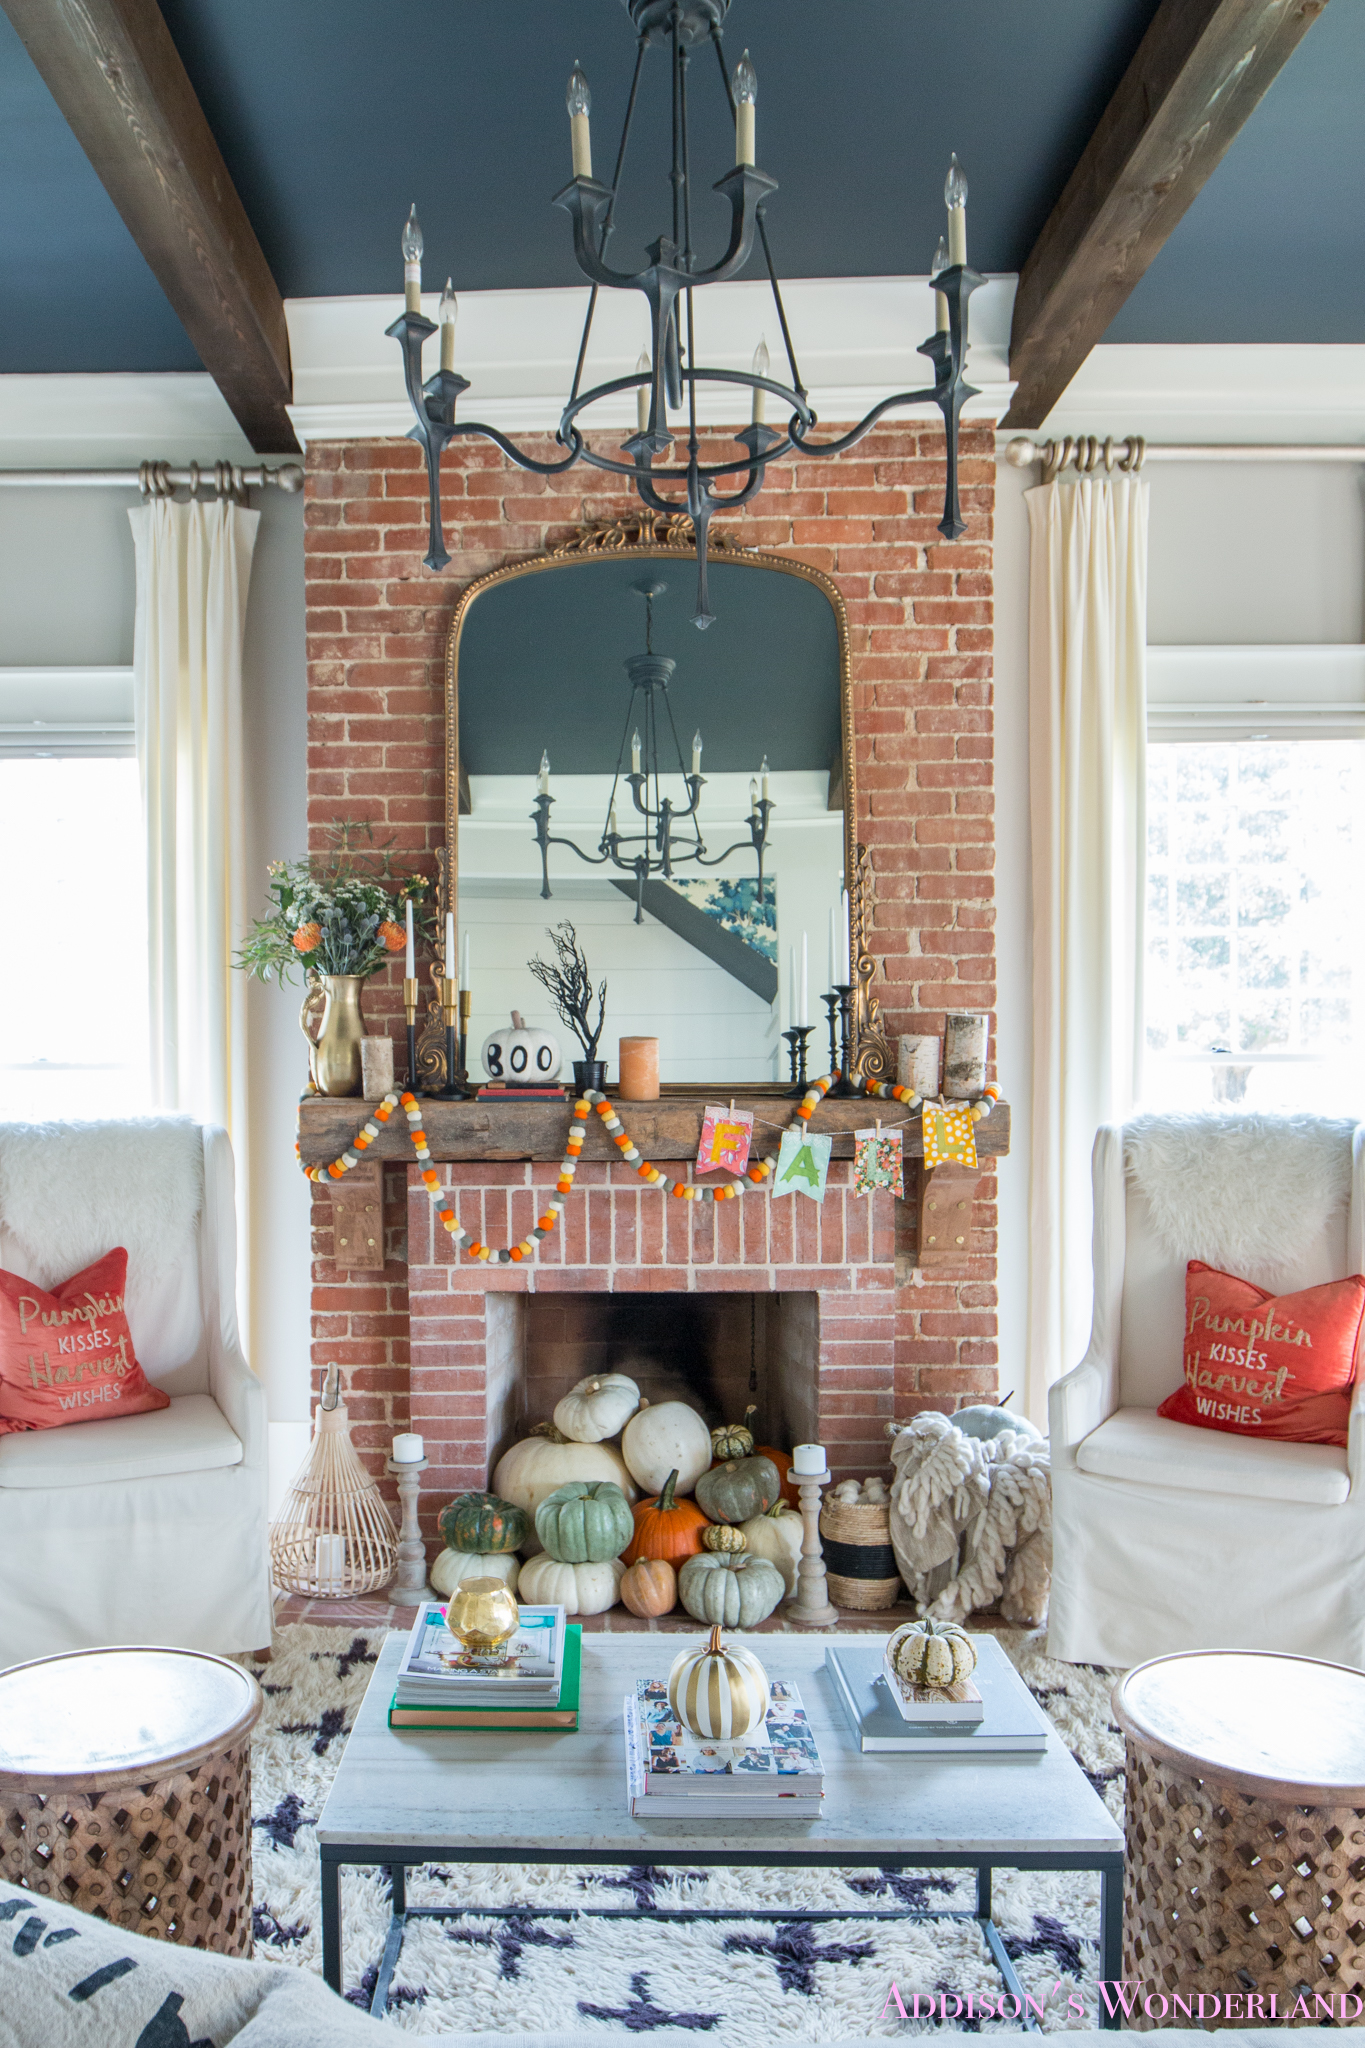 Our Fall & Halloween Living Room Decor w/ Mantle Ideas!